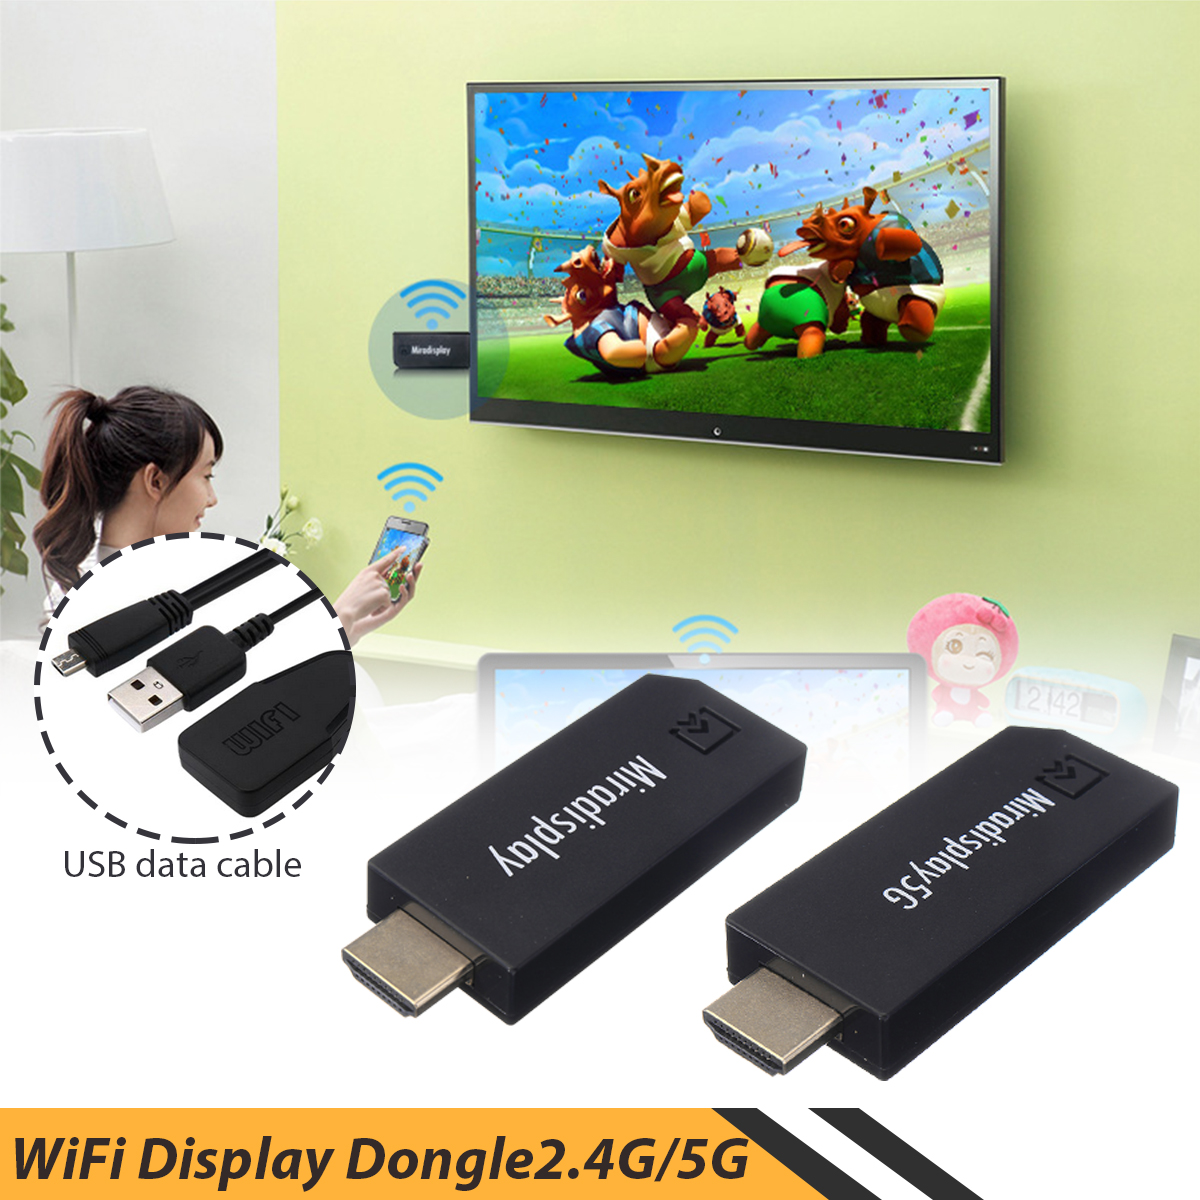 2.4G/5G wireless WiFi Display Dongle HDMI Support for Miracast/Dlna/Airplay Mobile computer multi-screen interaction